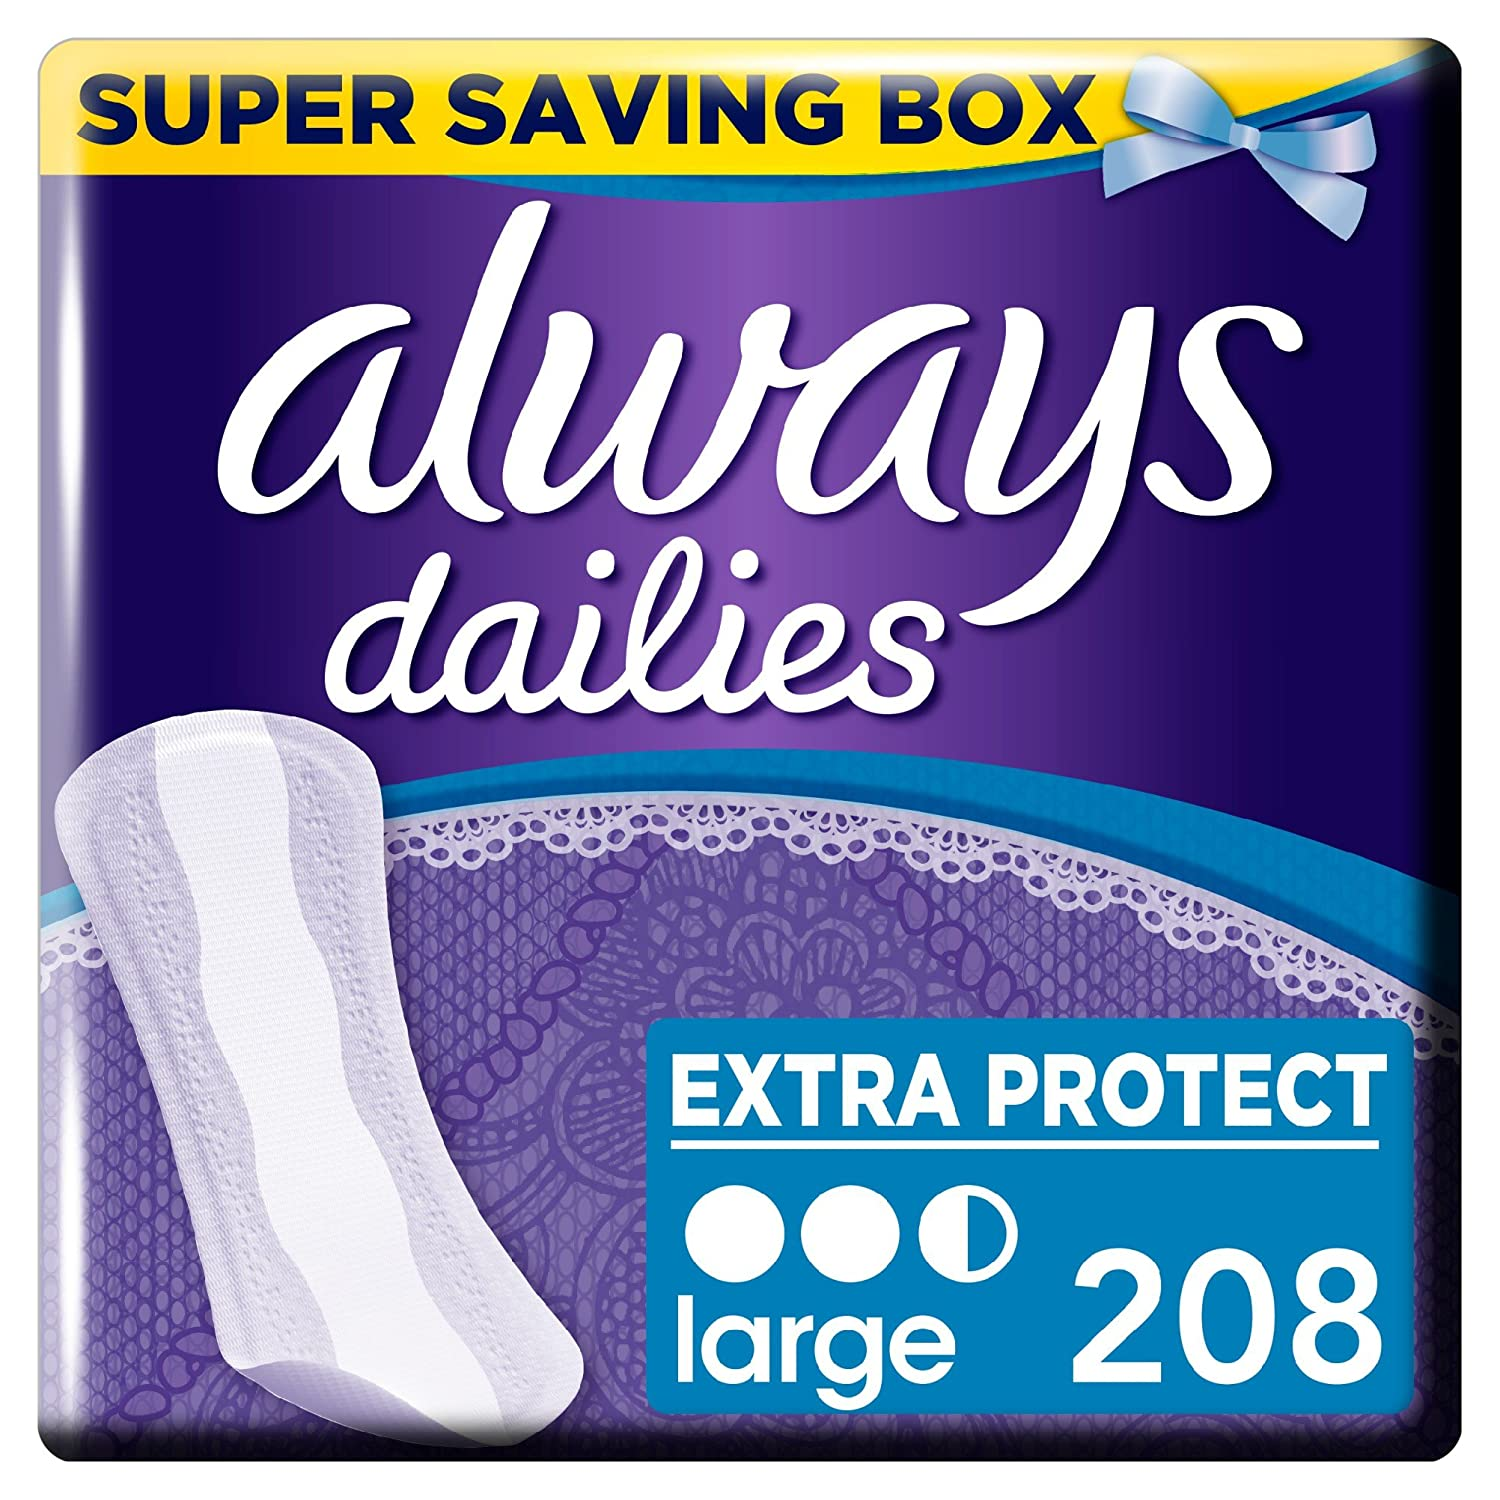 Always Dailies Extra Protect Panty Liners Large Liners, Breathable, Flexible and Comfortable with Absorbent Core, 52 x 4 - Super Saving Box Procter & Gamble 83732721